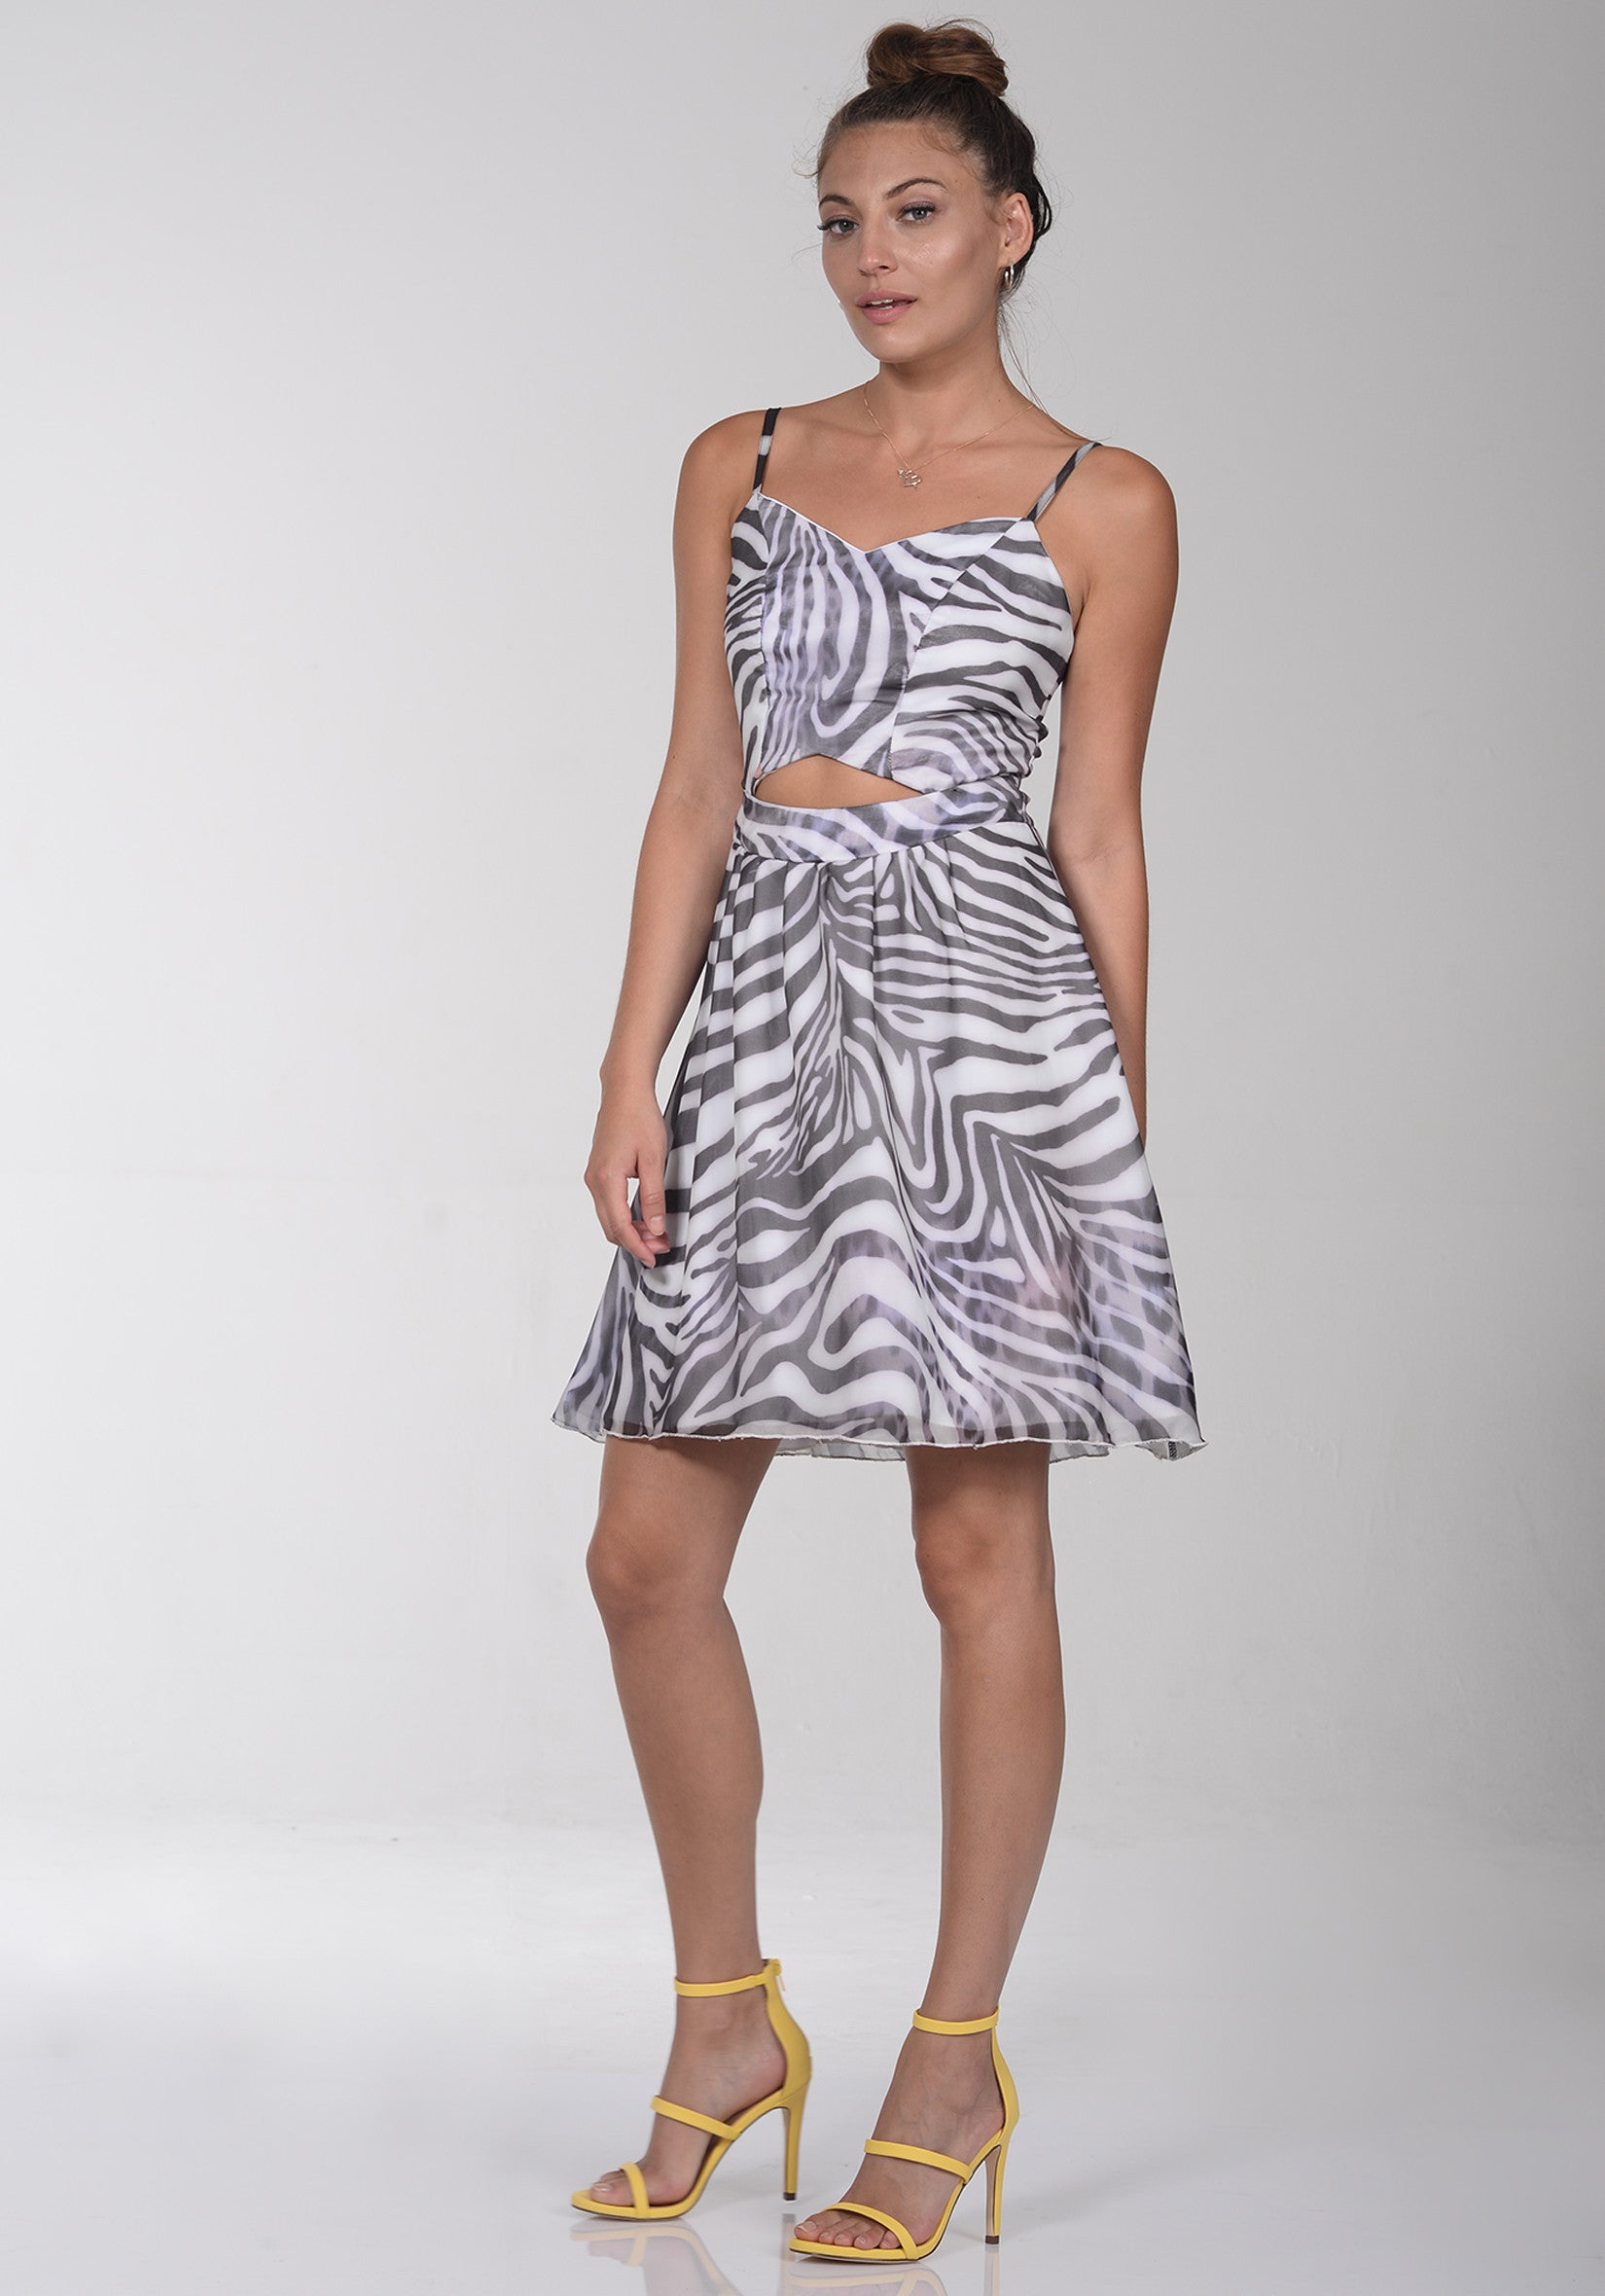 6c18d4dc9f Short zebra print dress - PIOO PIOO - US